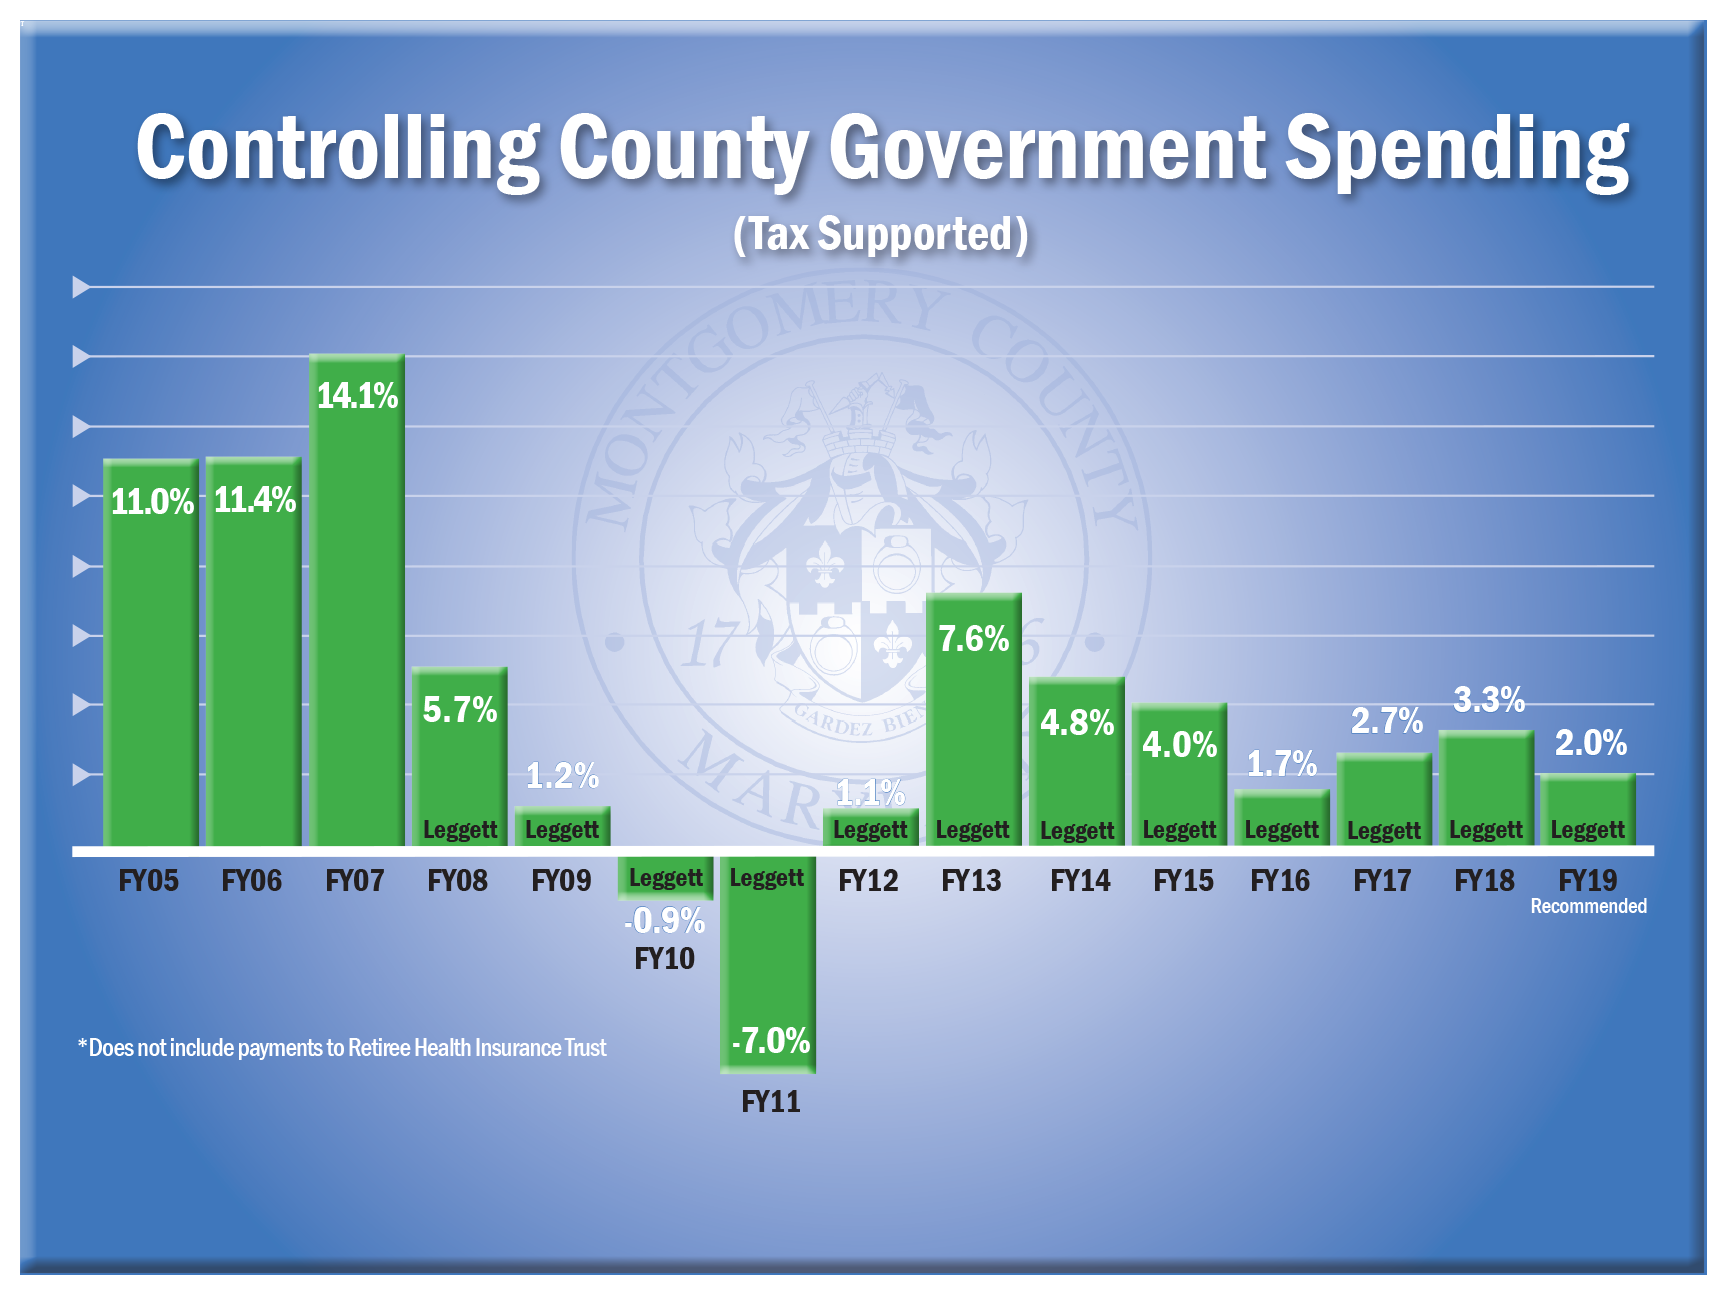 Controlling County Government Spending